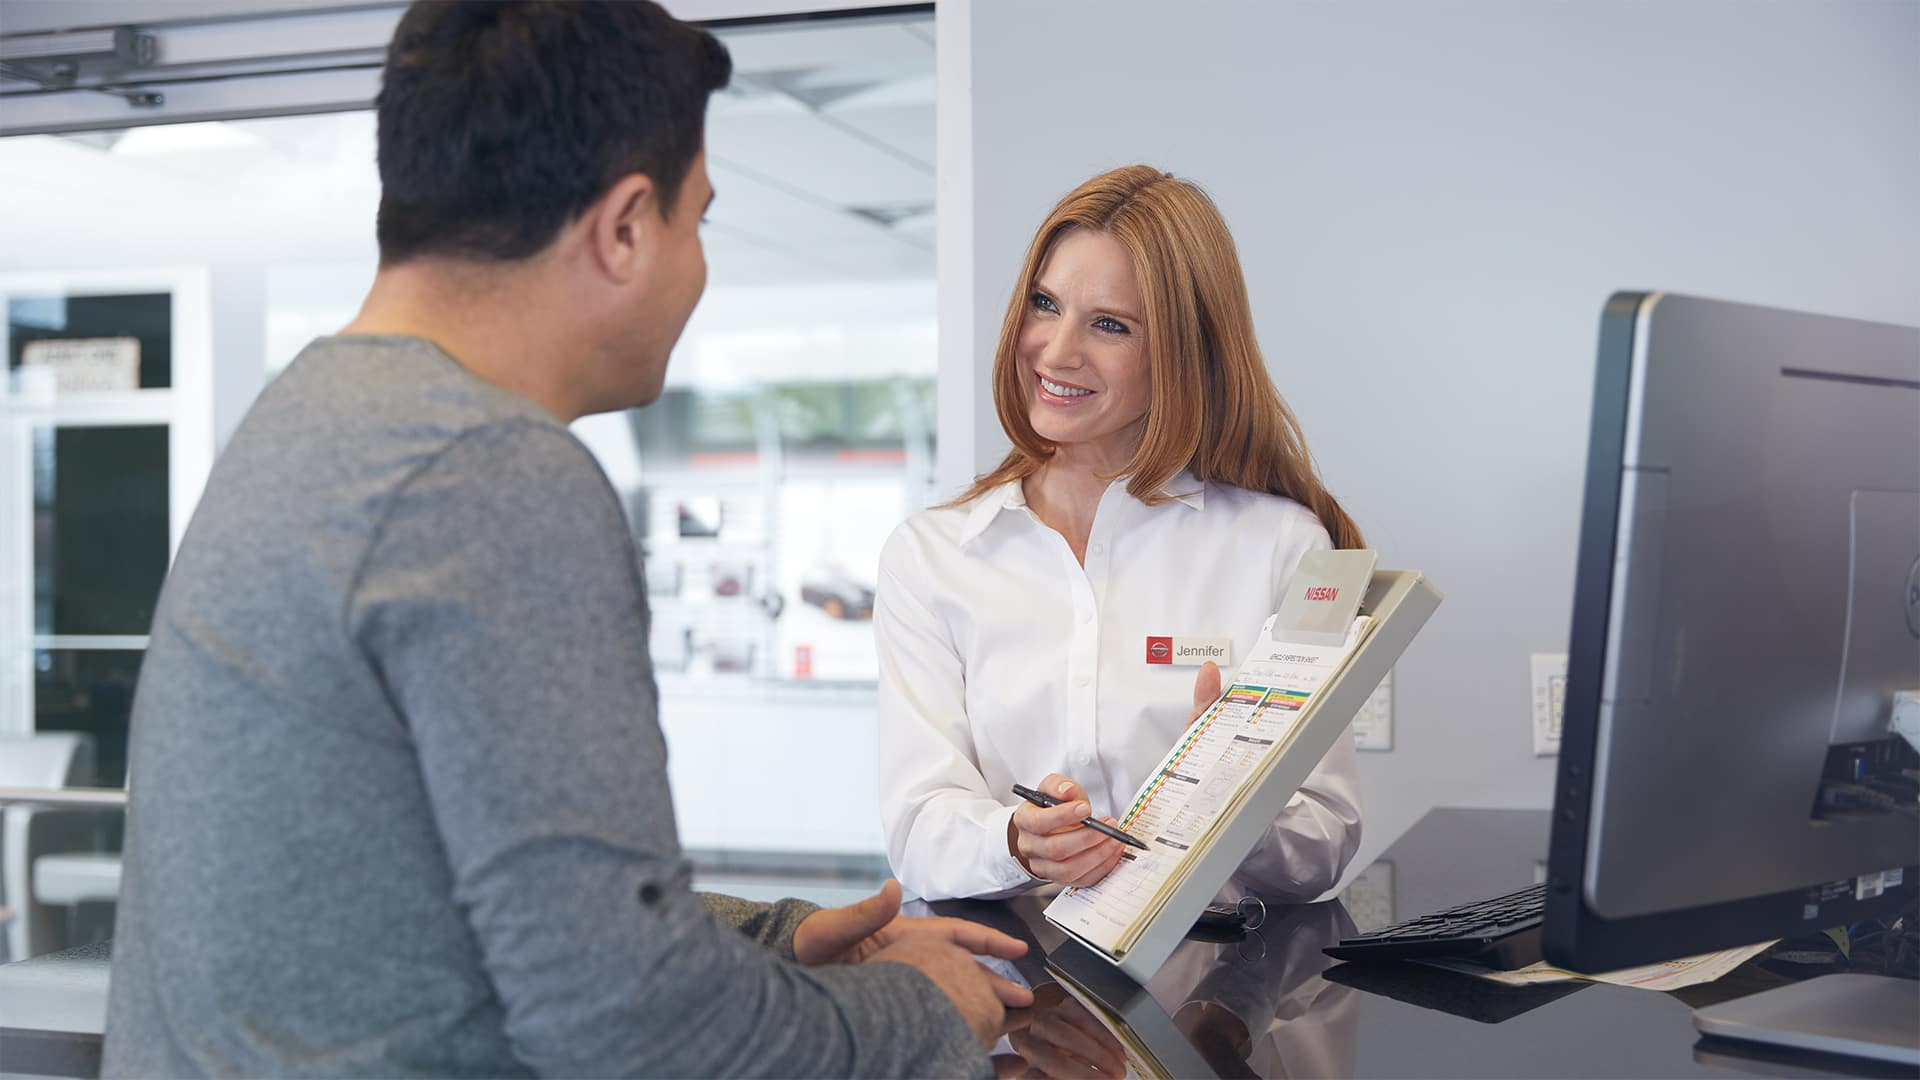 Boch Nissan South is a Family Owned Dealership near Cumberland, RI | Nissan Advisor showing customer chart